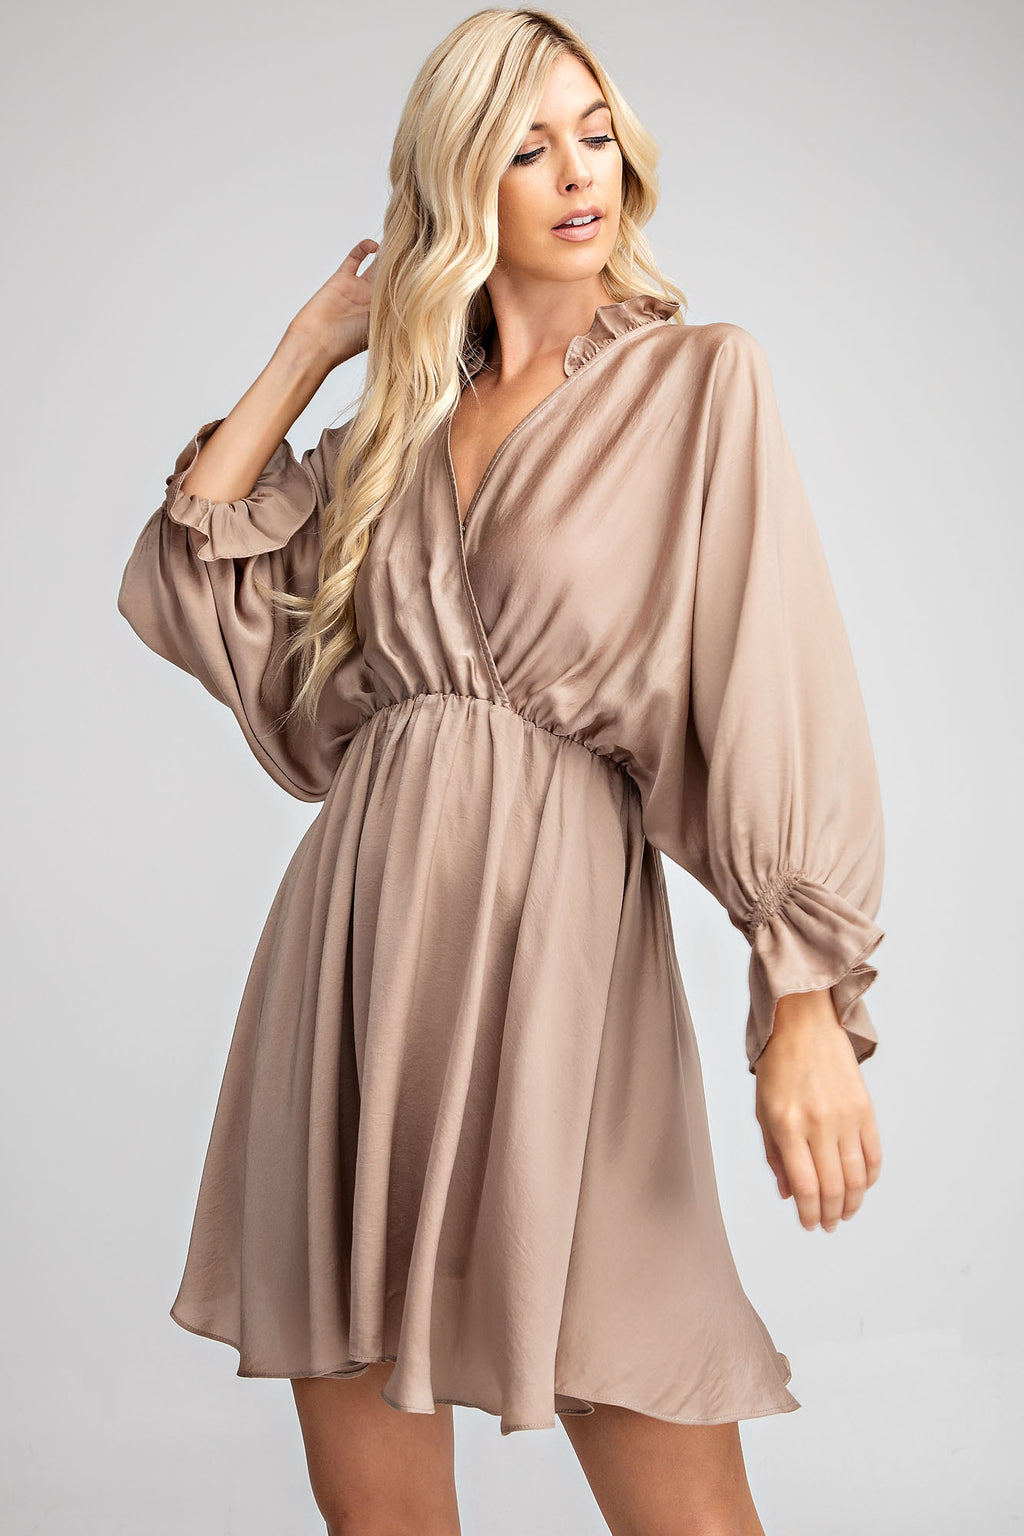 Ruffle Surplice Dress